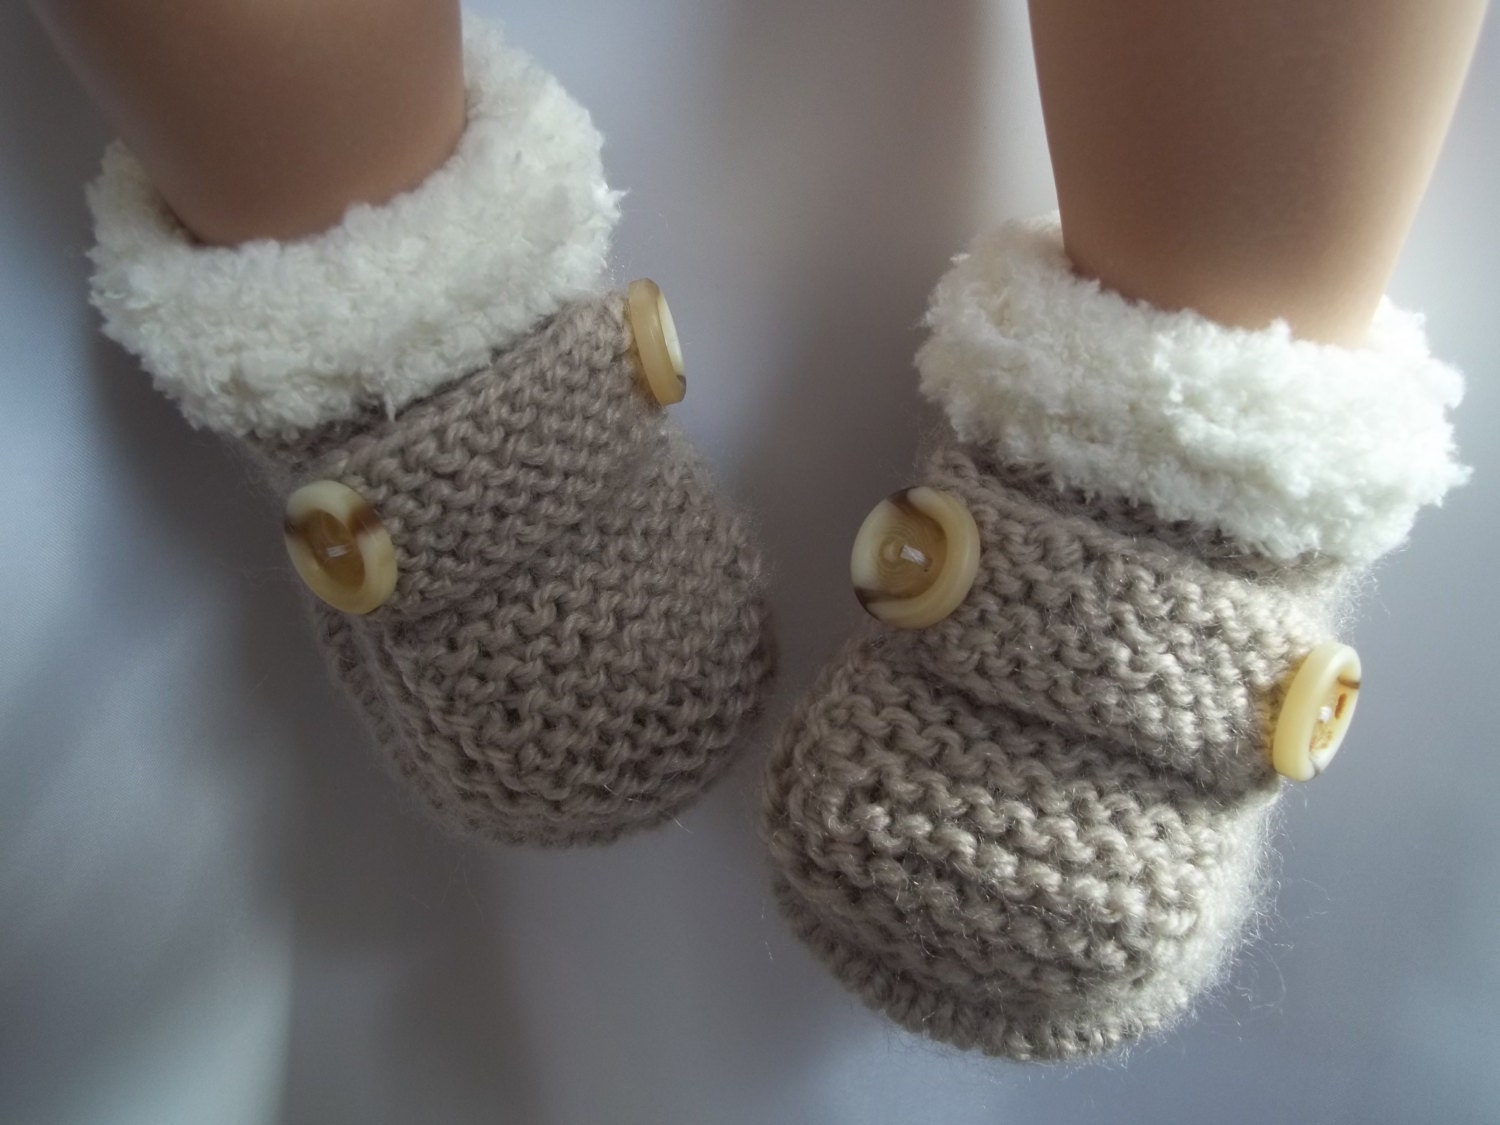 95f585d80db Baby Ugg Booties Knit Patterns - cheap watches mgc-gas.com